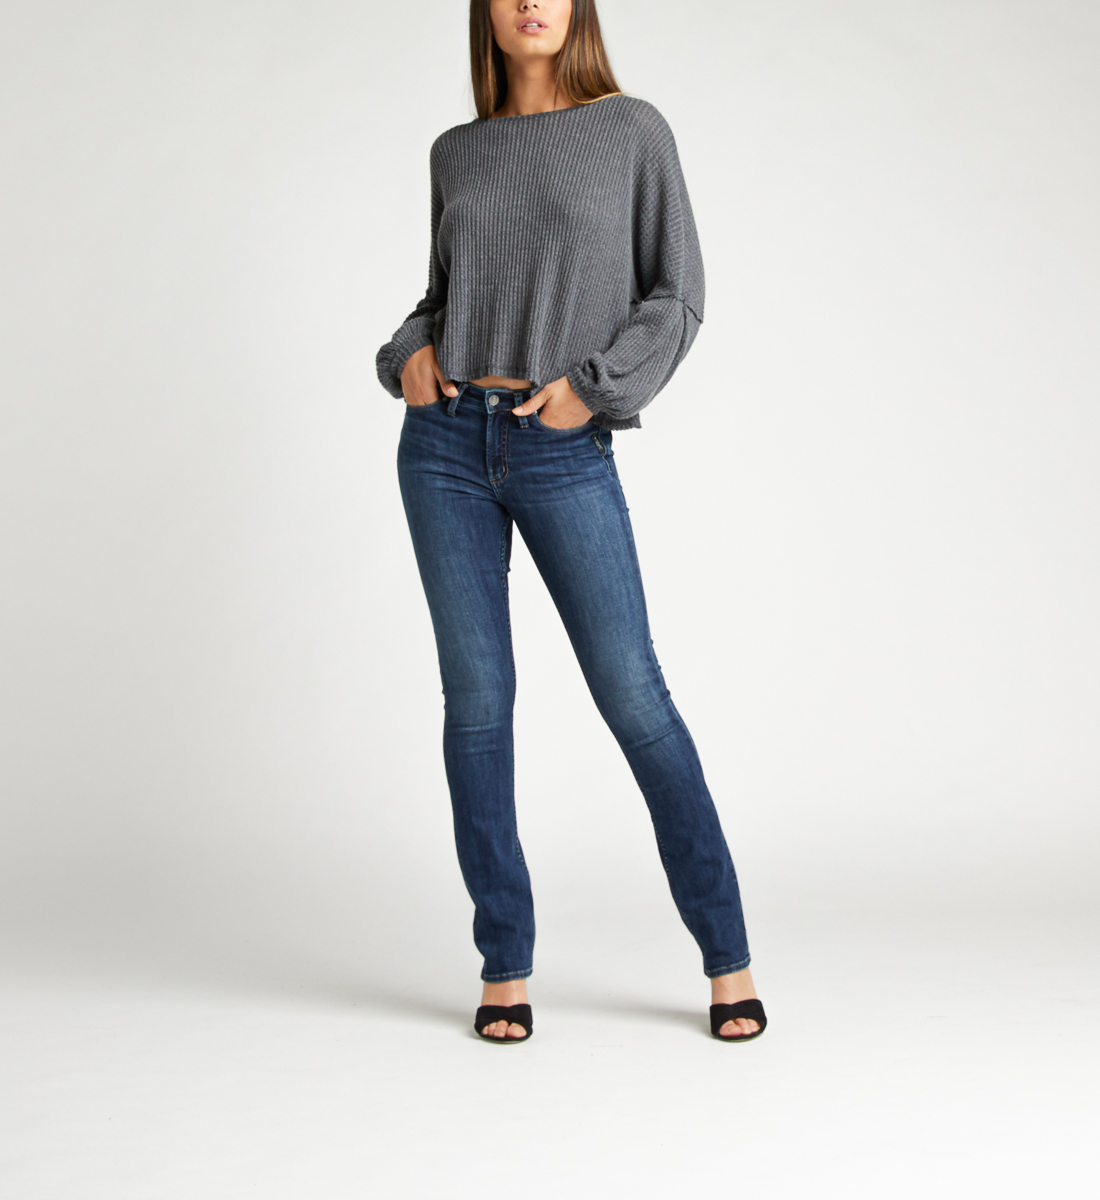 Silver Jeans Most Wanted Mid Rise Skinny Bootcut Jeans